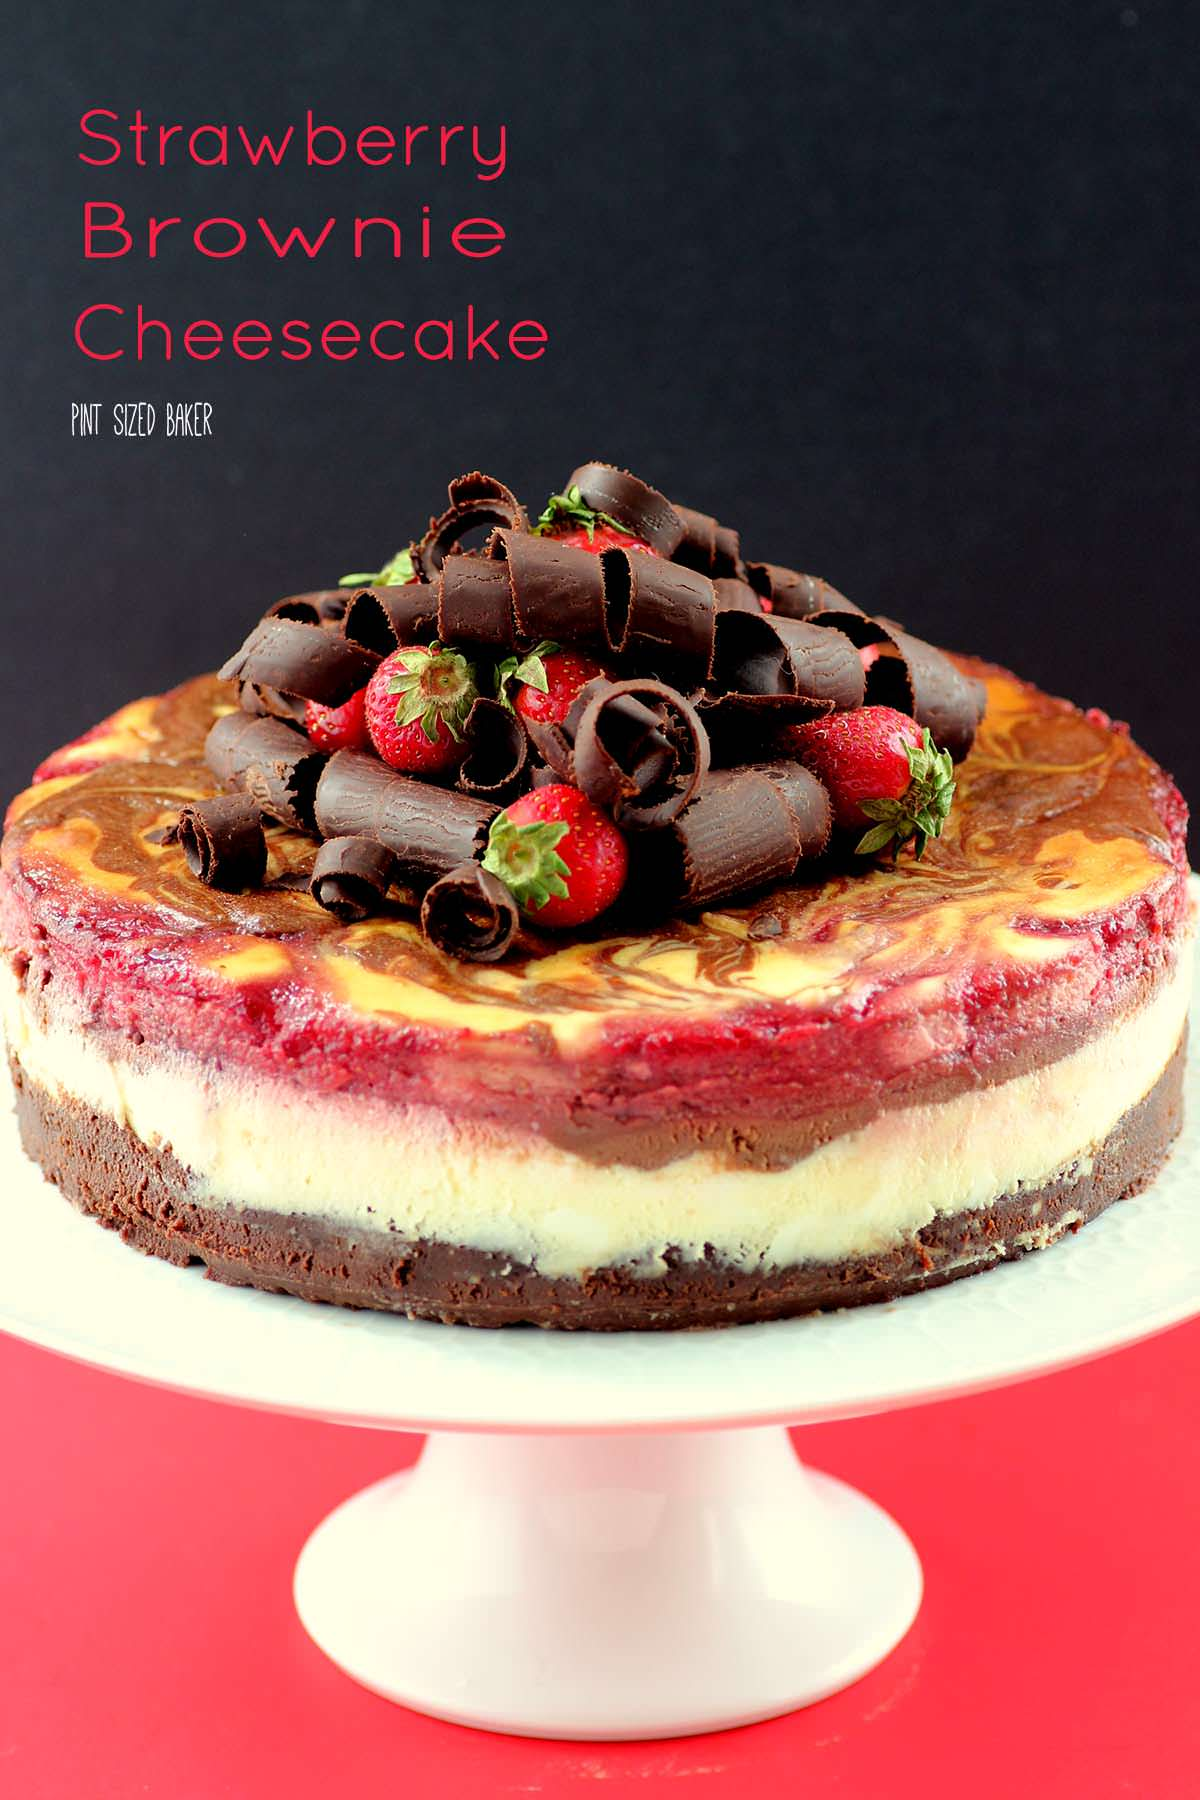 Check out this amazing Strawberry Brownie Cheesecake made with a brownie base, then topped with a layer of strawberries. I'm going to make it right now!